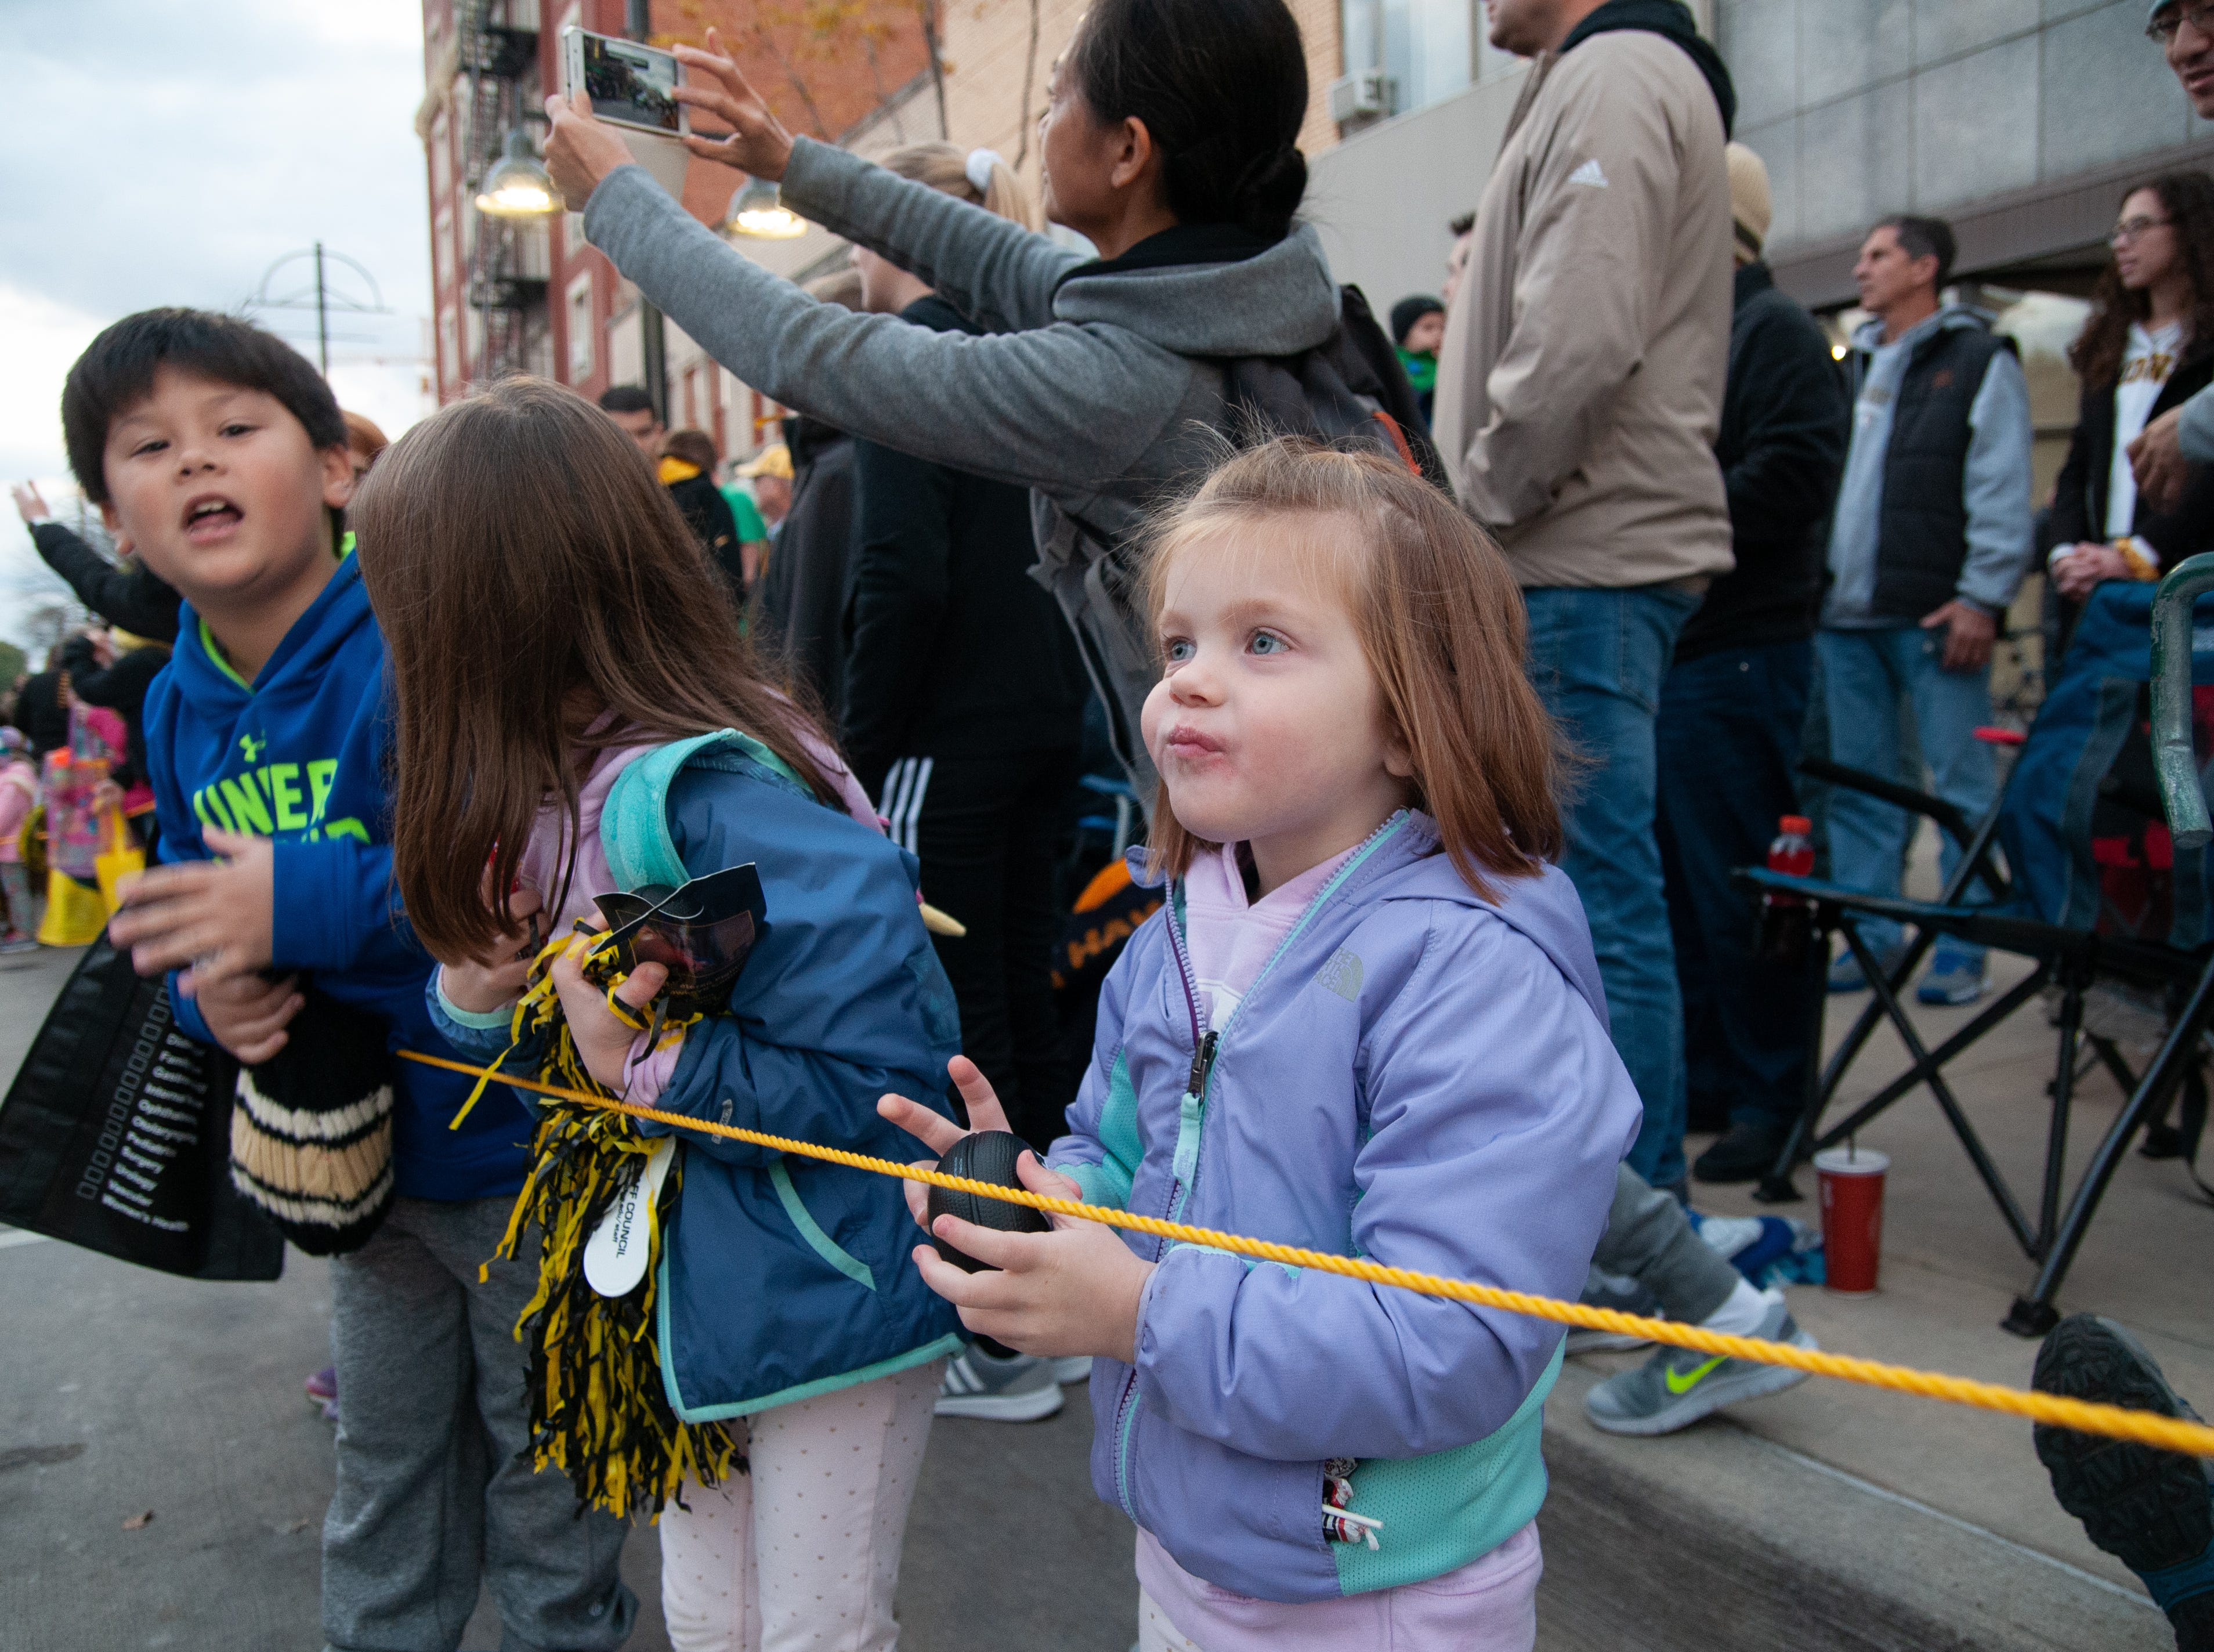 Maggie Boersma, 3, chews candy during the 2018 Homecoming parade, Friday, Oct. 19, 2018, in Iowa City.